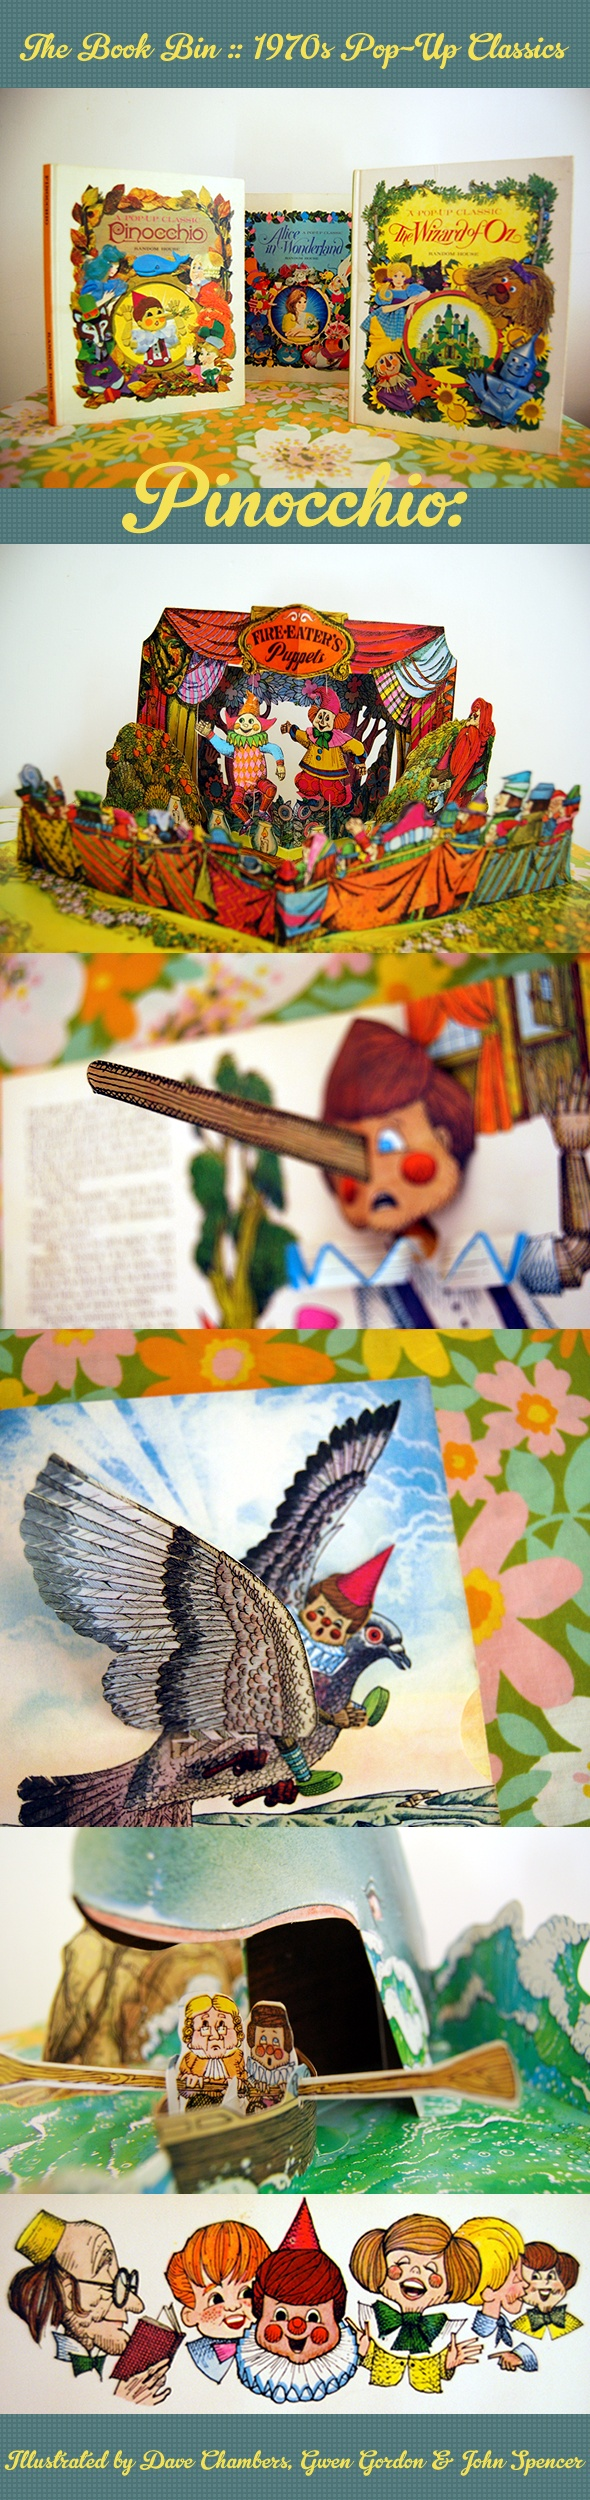 groovy 70s pop-up books :: Pinocchio